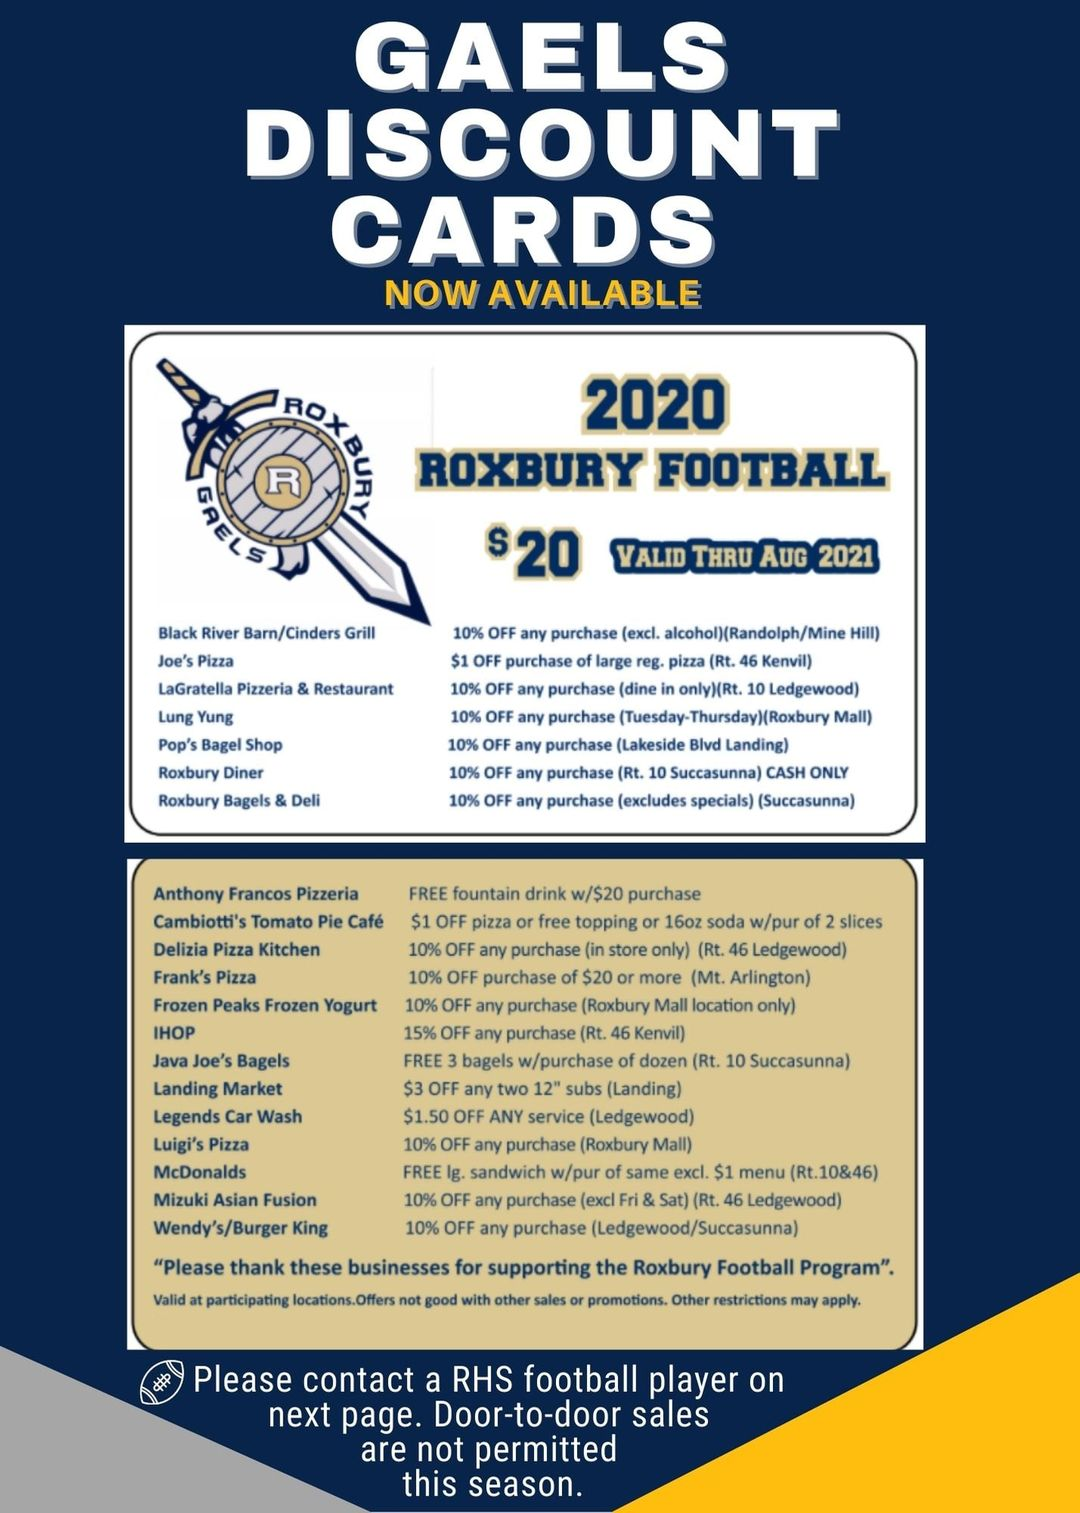 Gaels Discount Cards for 2020. On sale for $20 and good thru August 2021. It lists about 20 local food places and the discounts they offer.